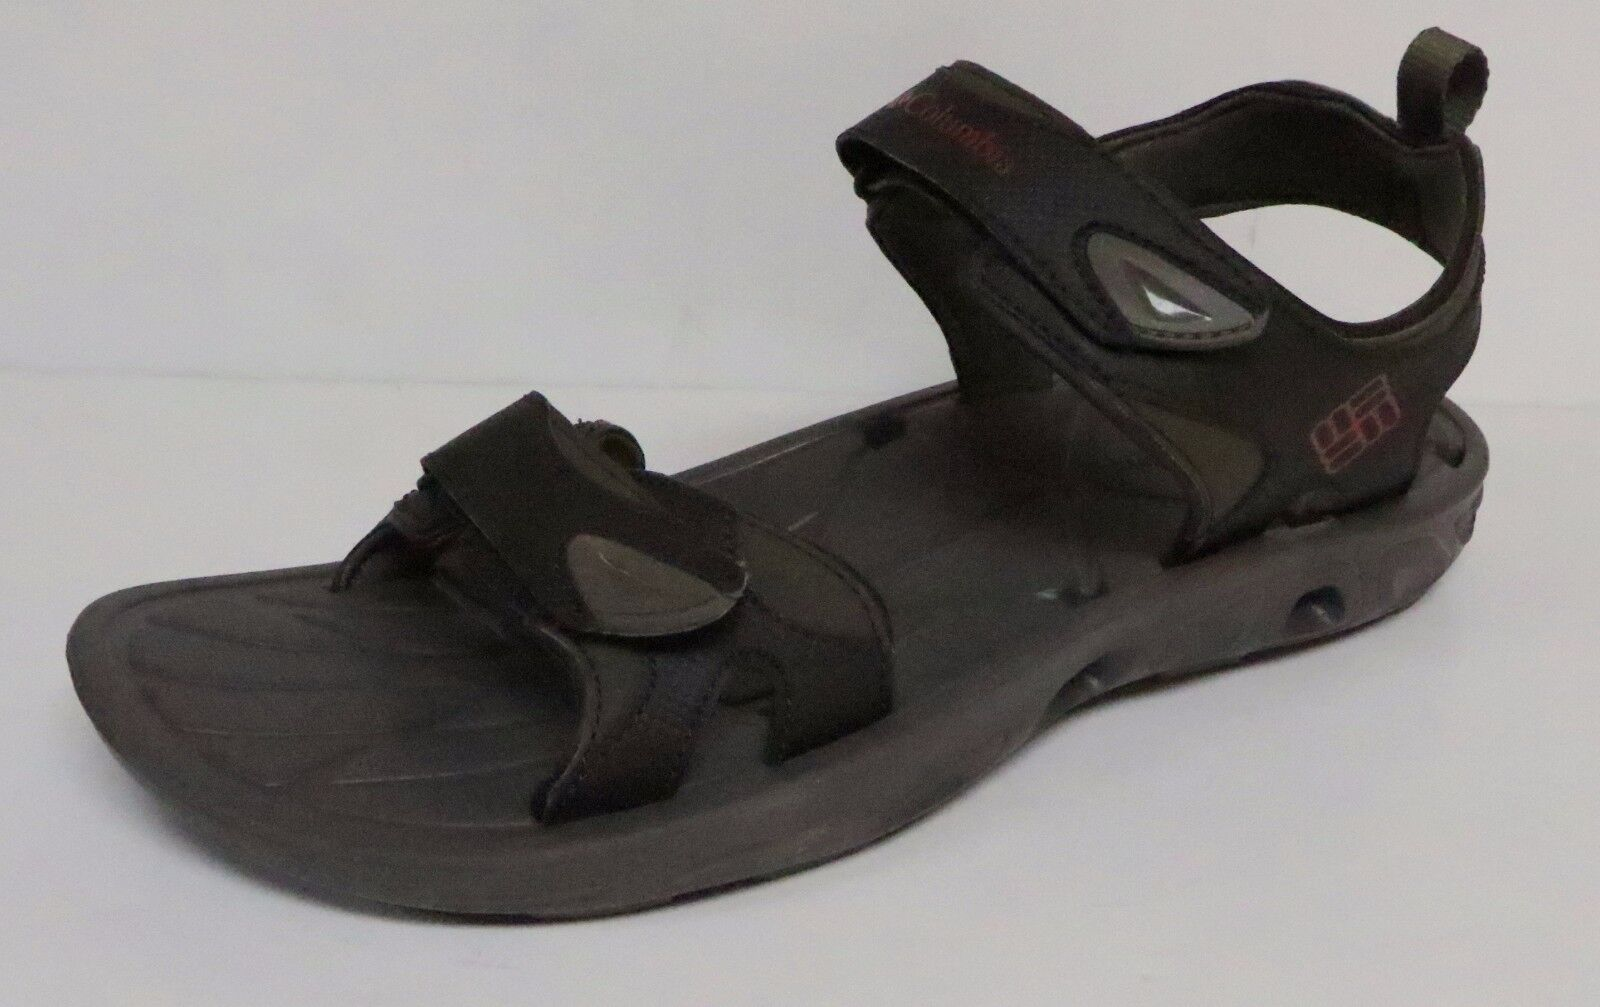 COLUMBIA THUNDER RAPIDS MEN'S BROWN WATER SANDALS RIVER SHOES CHOICE 9, 10, 12